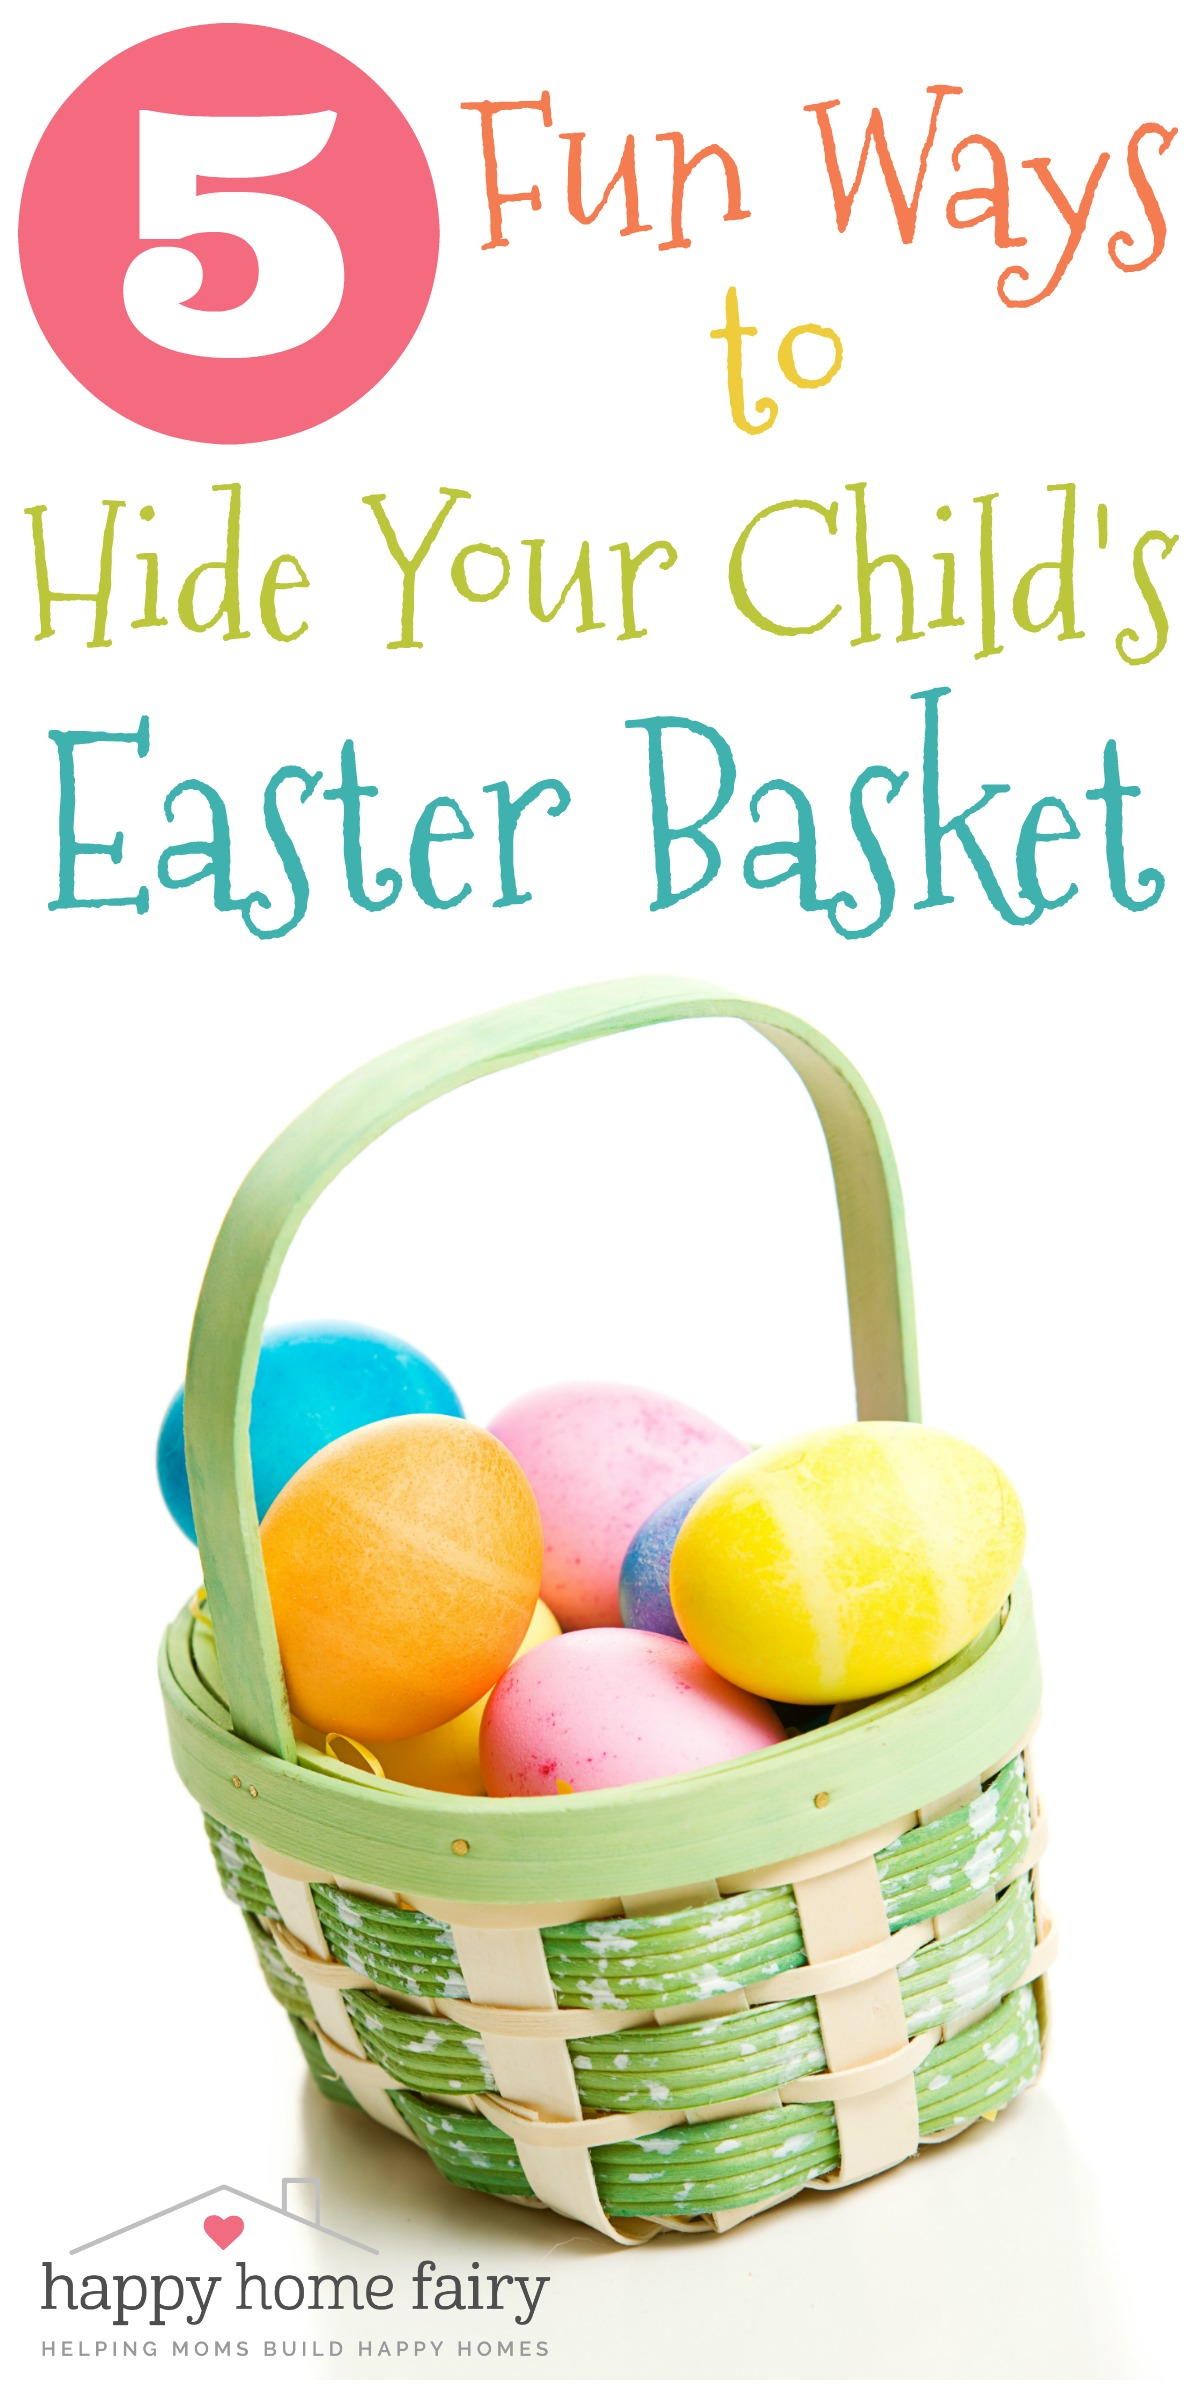 5 fun ways to hide your childs easter basket happy home fairy 5 fun ways to hide your childs easter basket negle Image collections